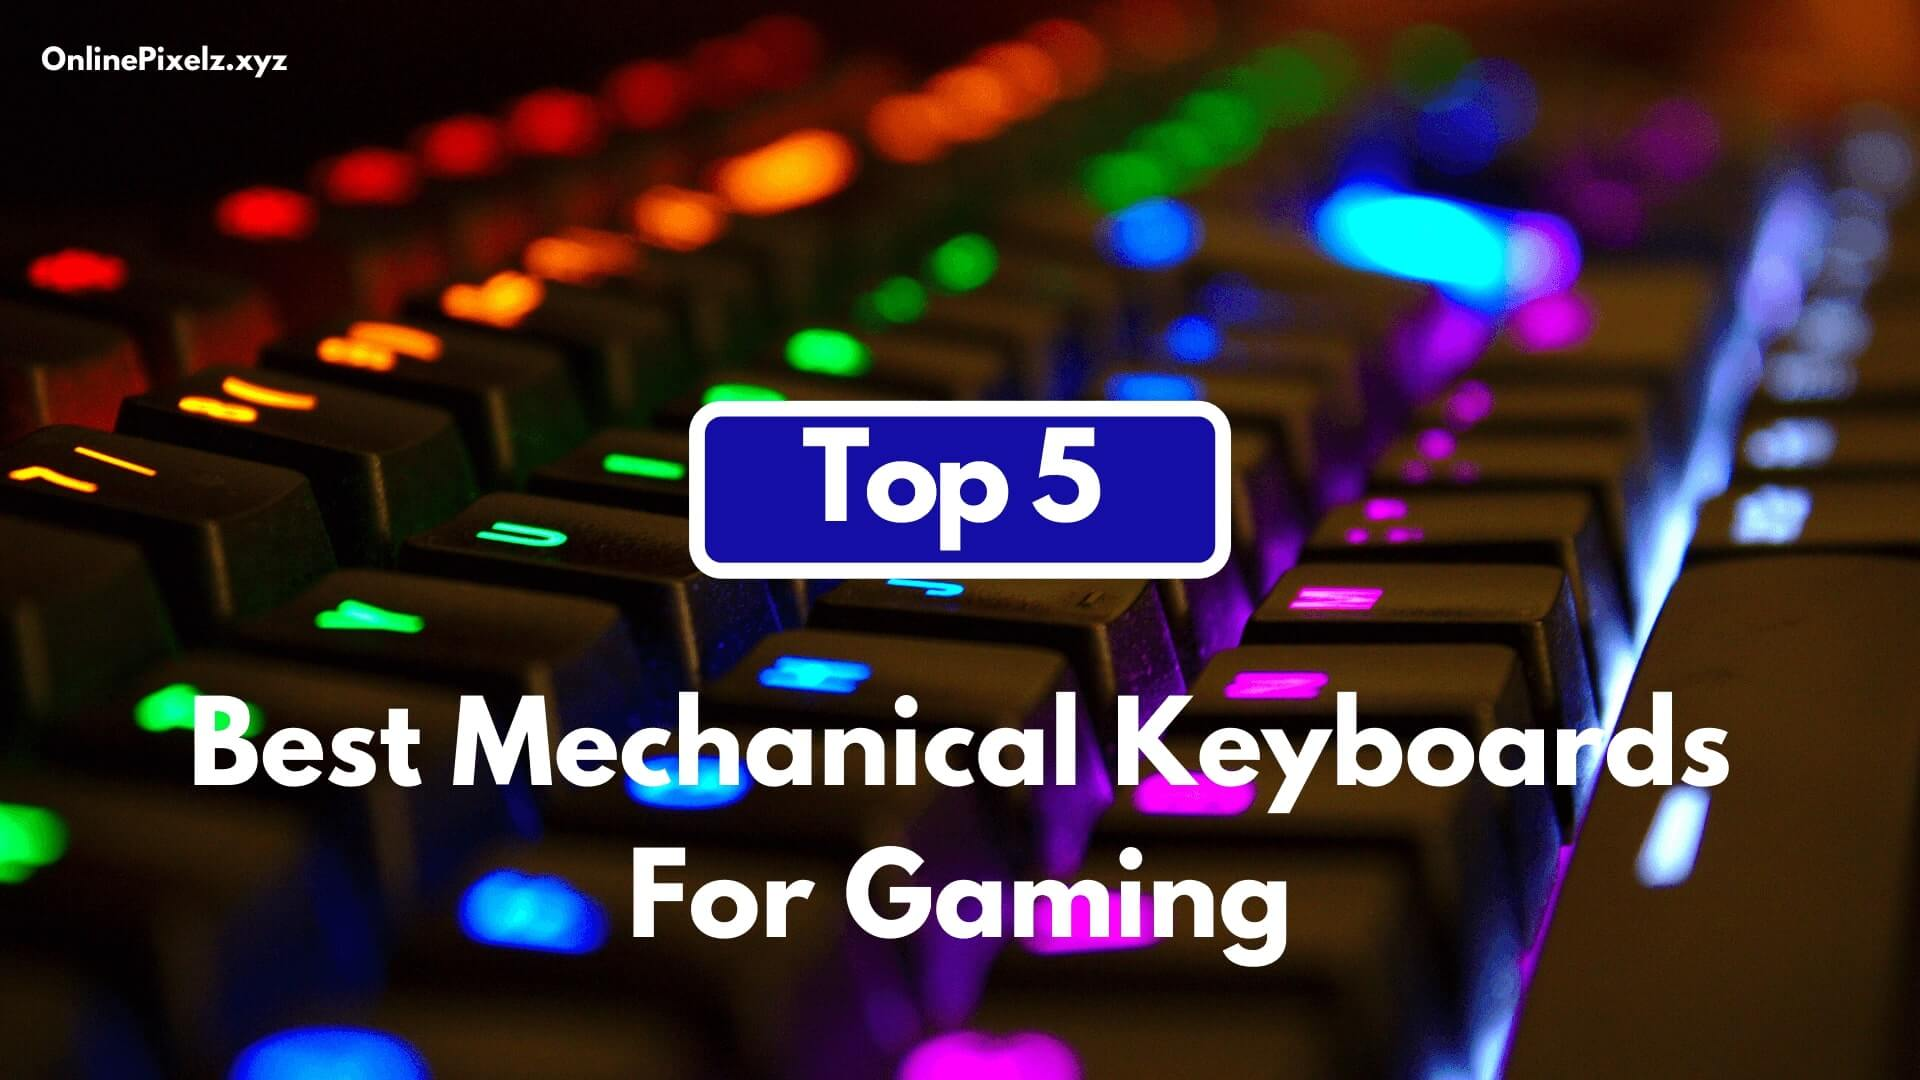 Best Mechanical Keyboards For Gaming